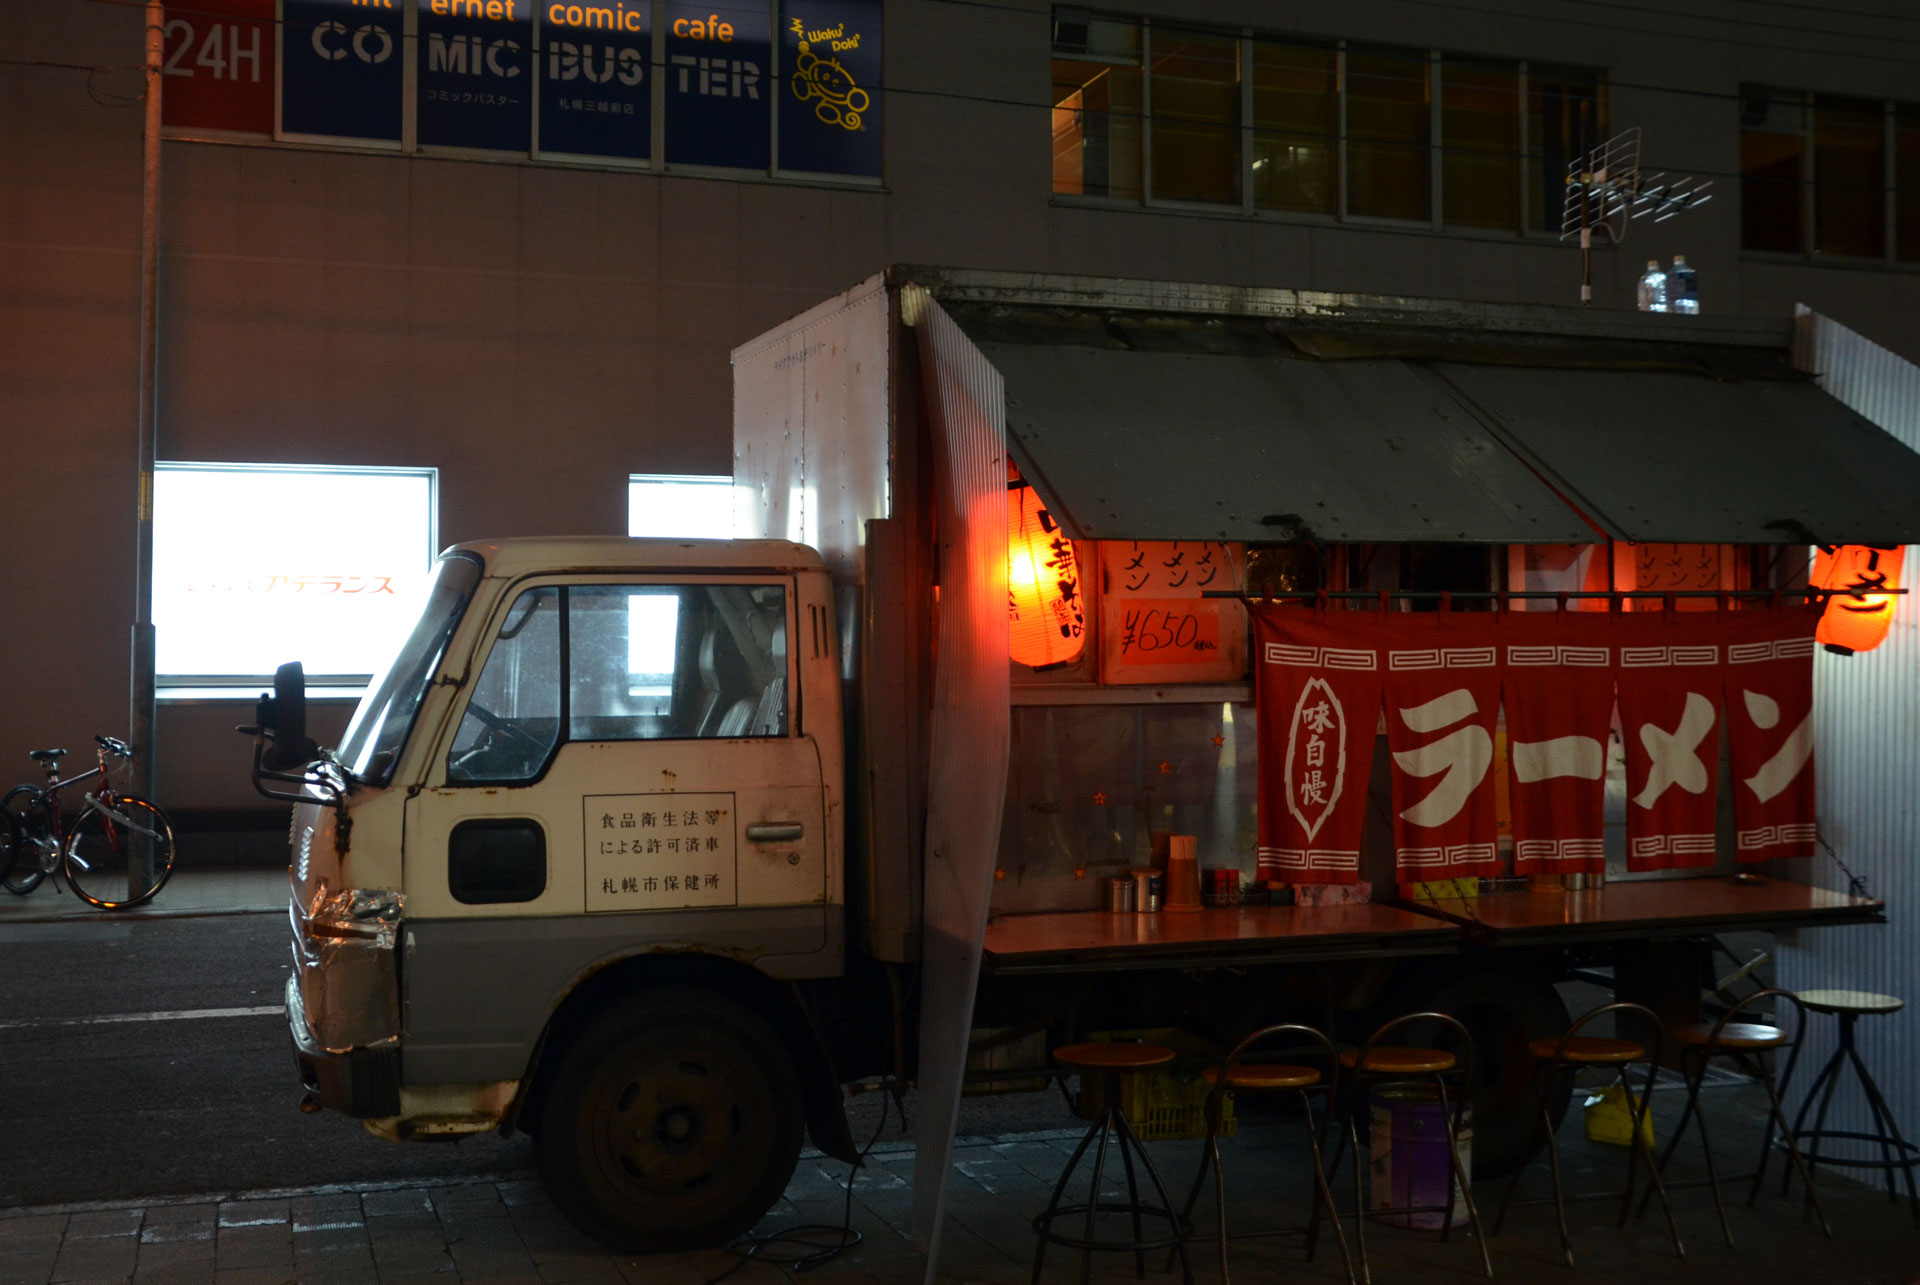 Food truck in Sapporo